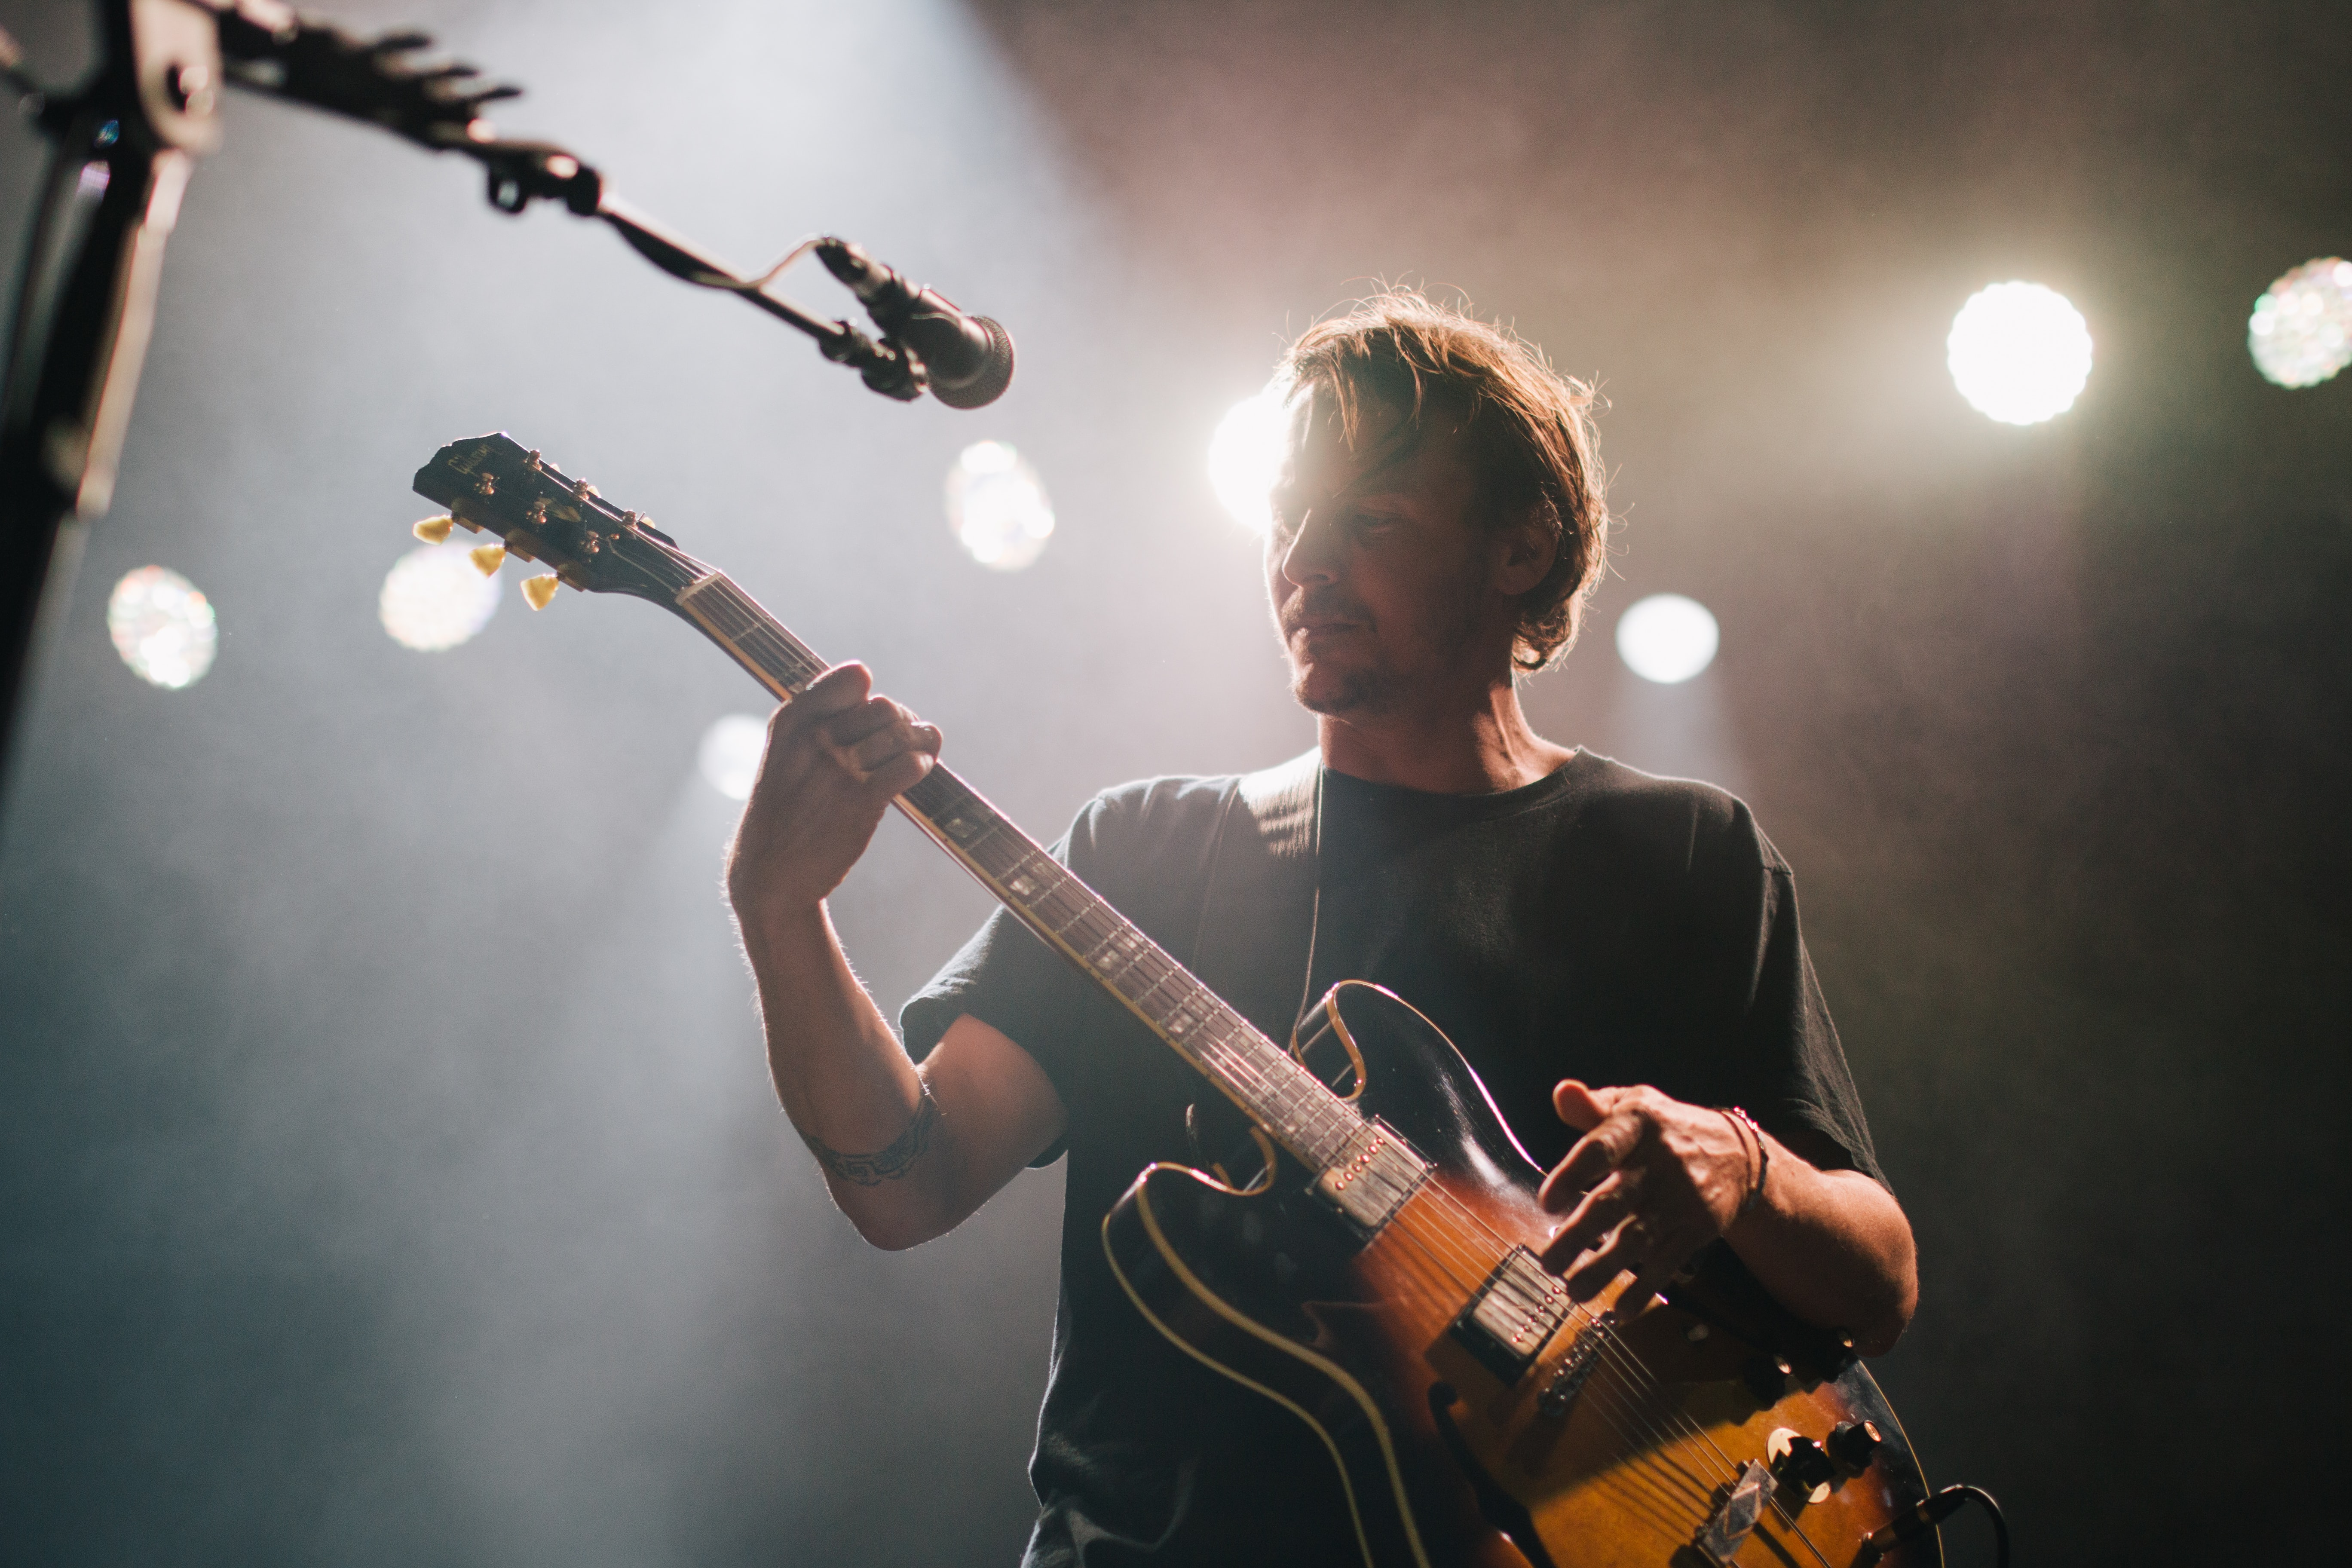 A guitar player thoughtfully strumming his electric guitar during a performance